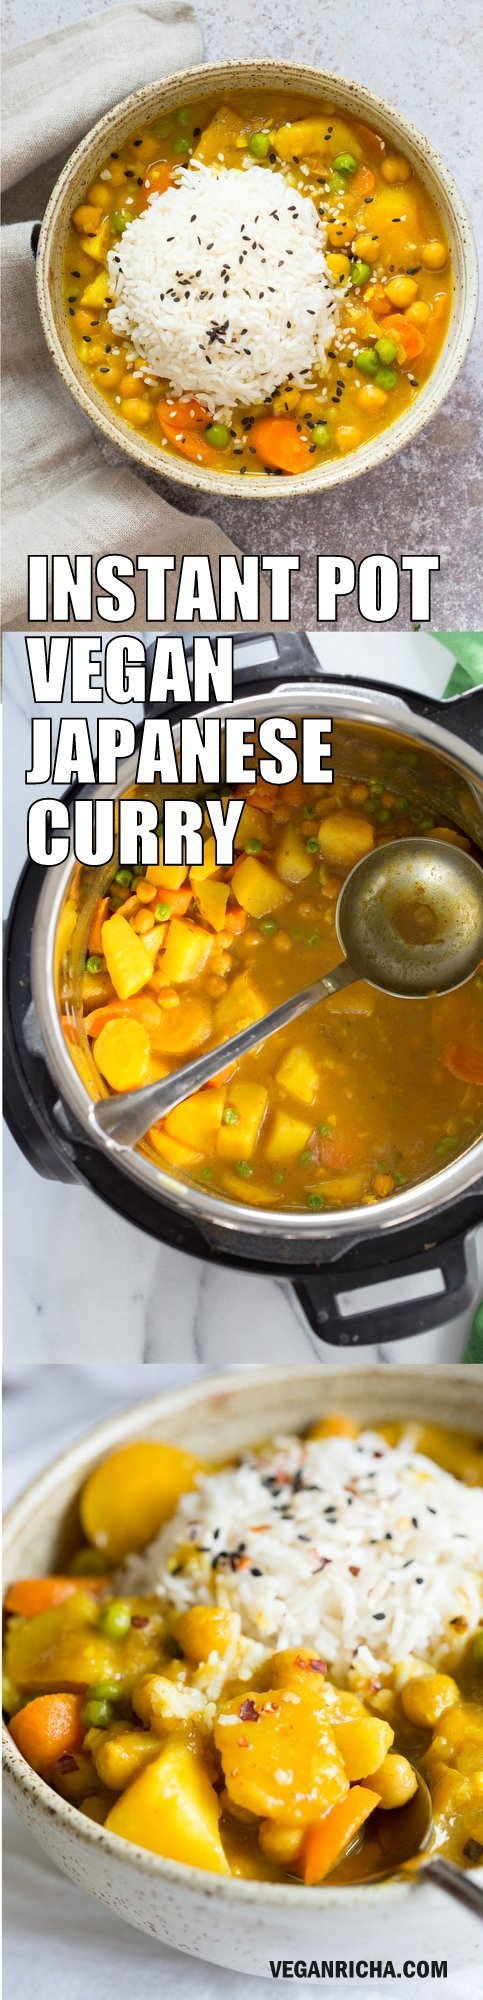 Vegan Japanese Curry made in Instant Pot Pressure cooker. Flavorful, Comforting, Vegetable Rich Curry for Weekday Dinner. Saucepan Option. #Vegan, #veganricha #glutenfree, #nutfree #Recipe. Can be #soyfree #oilfree | VeganRicha.com